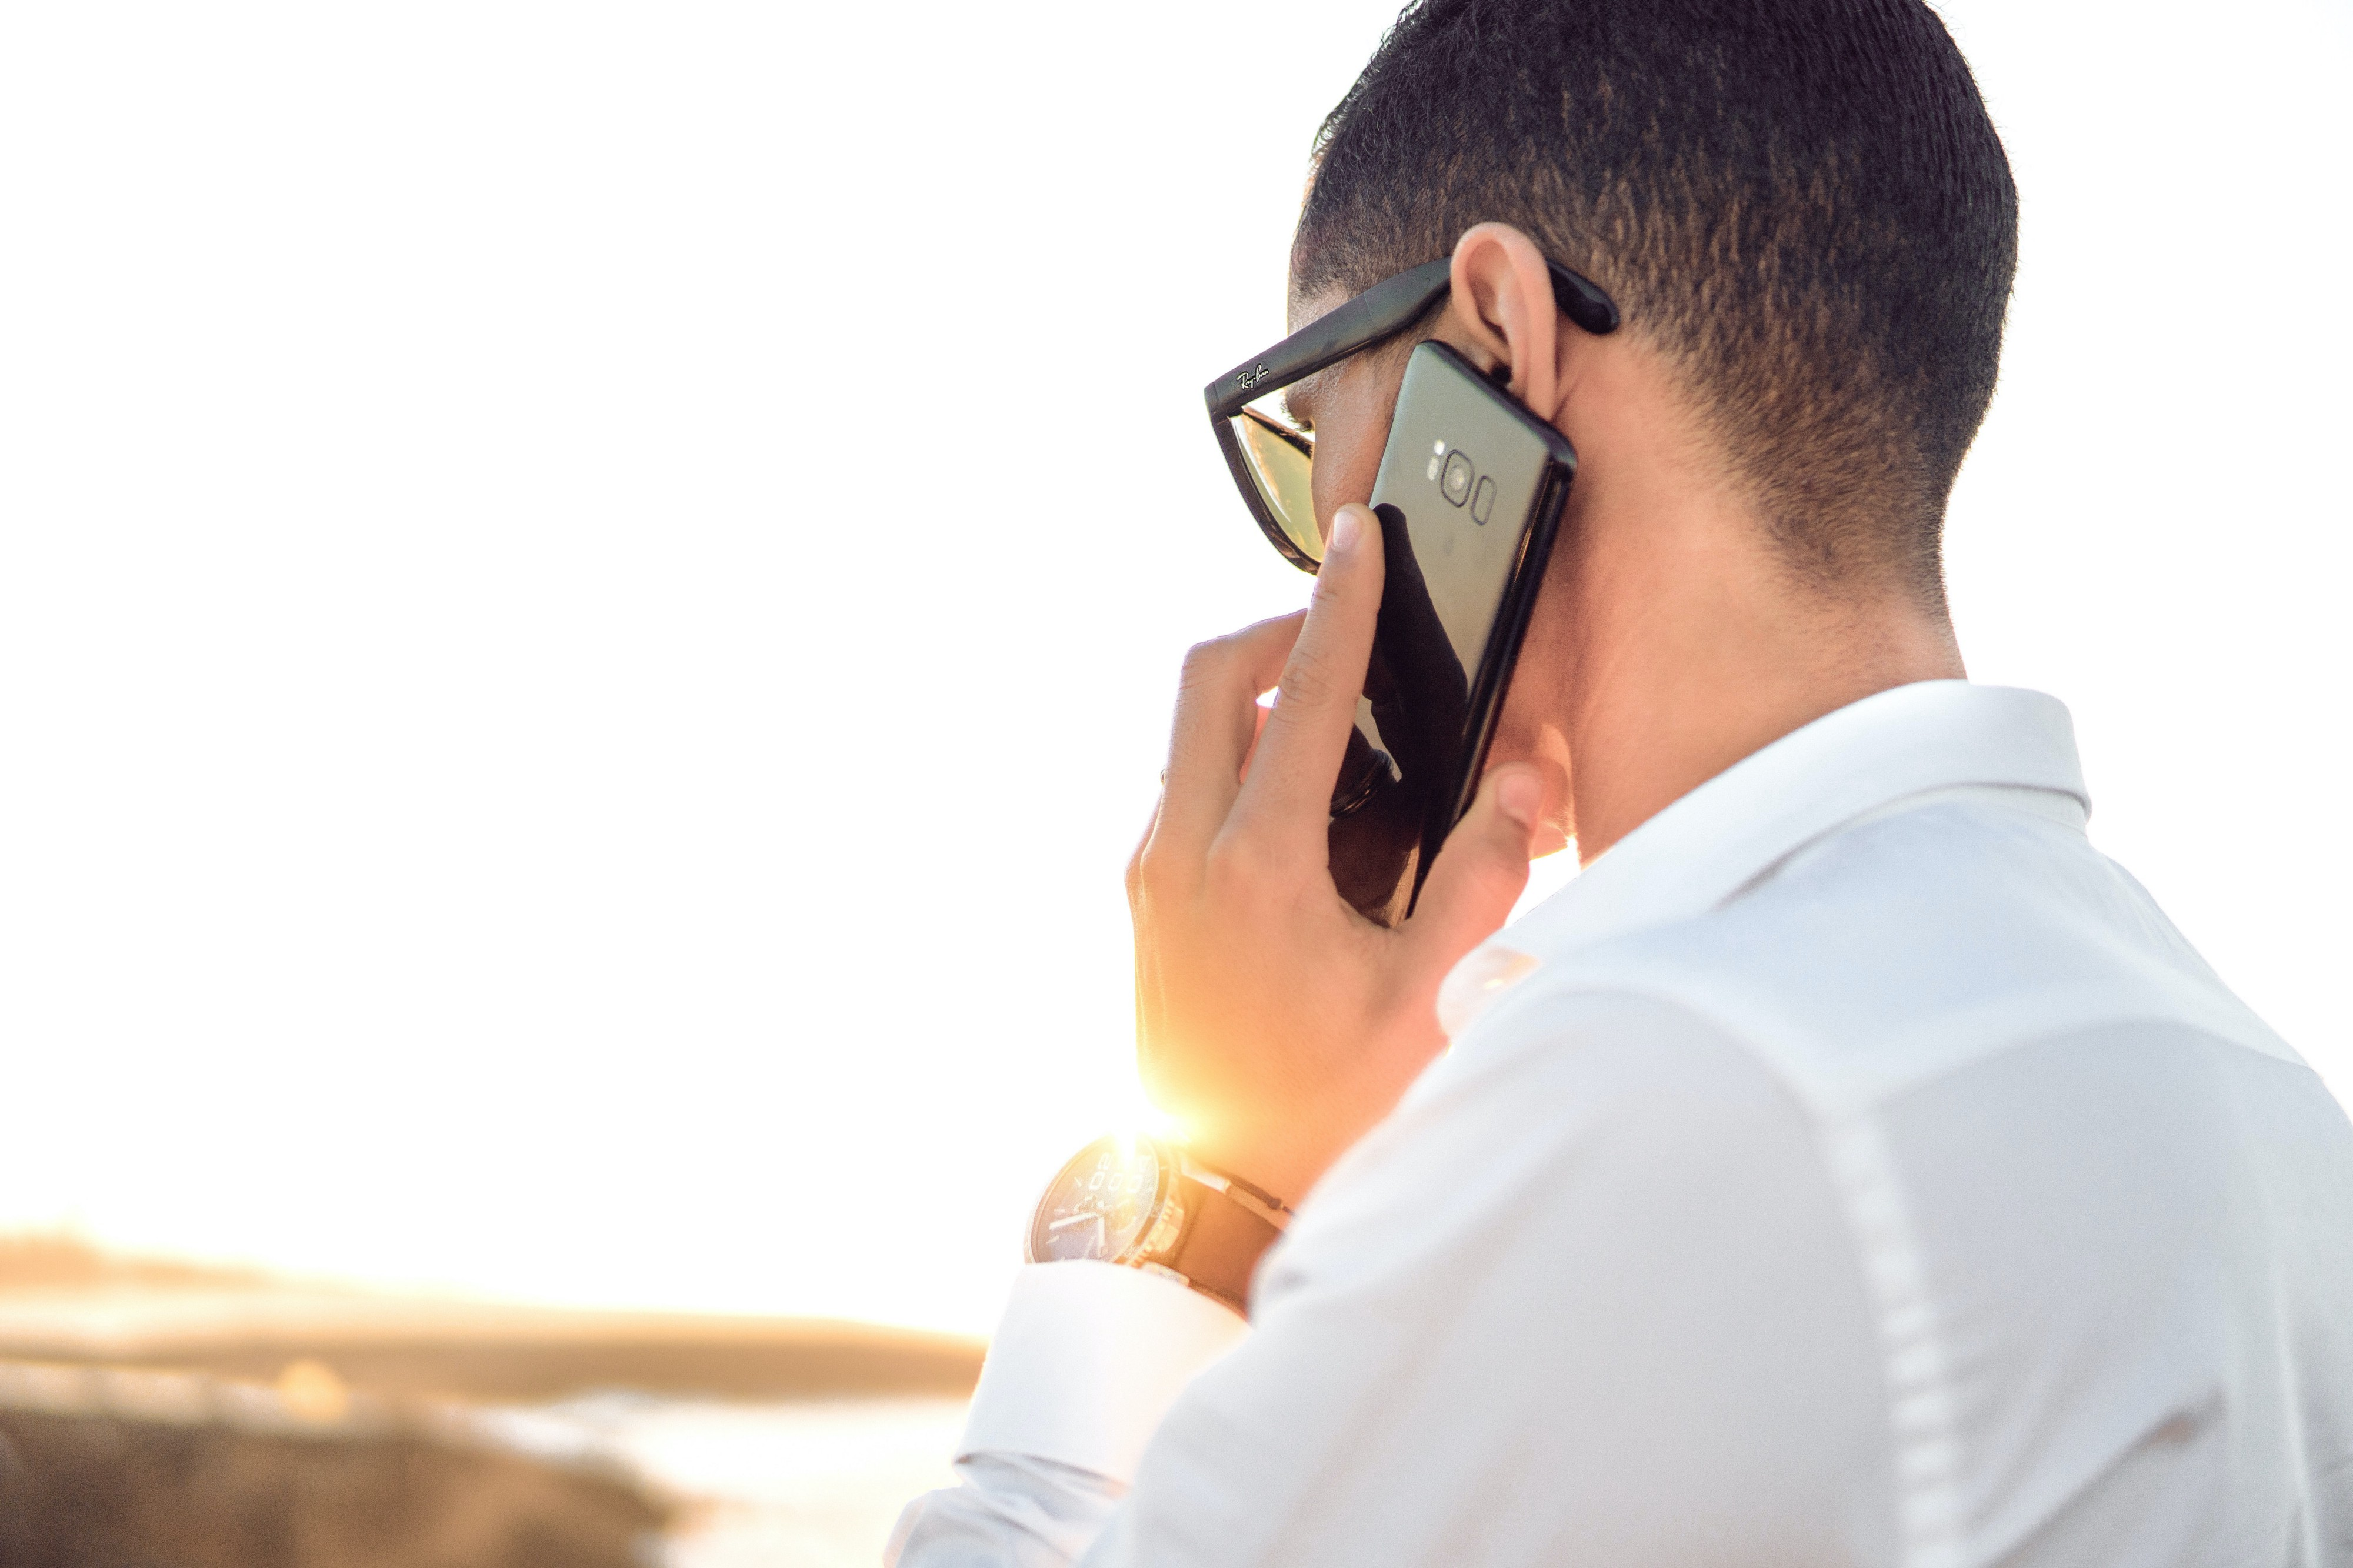 Man with glasses making a phone call